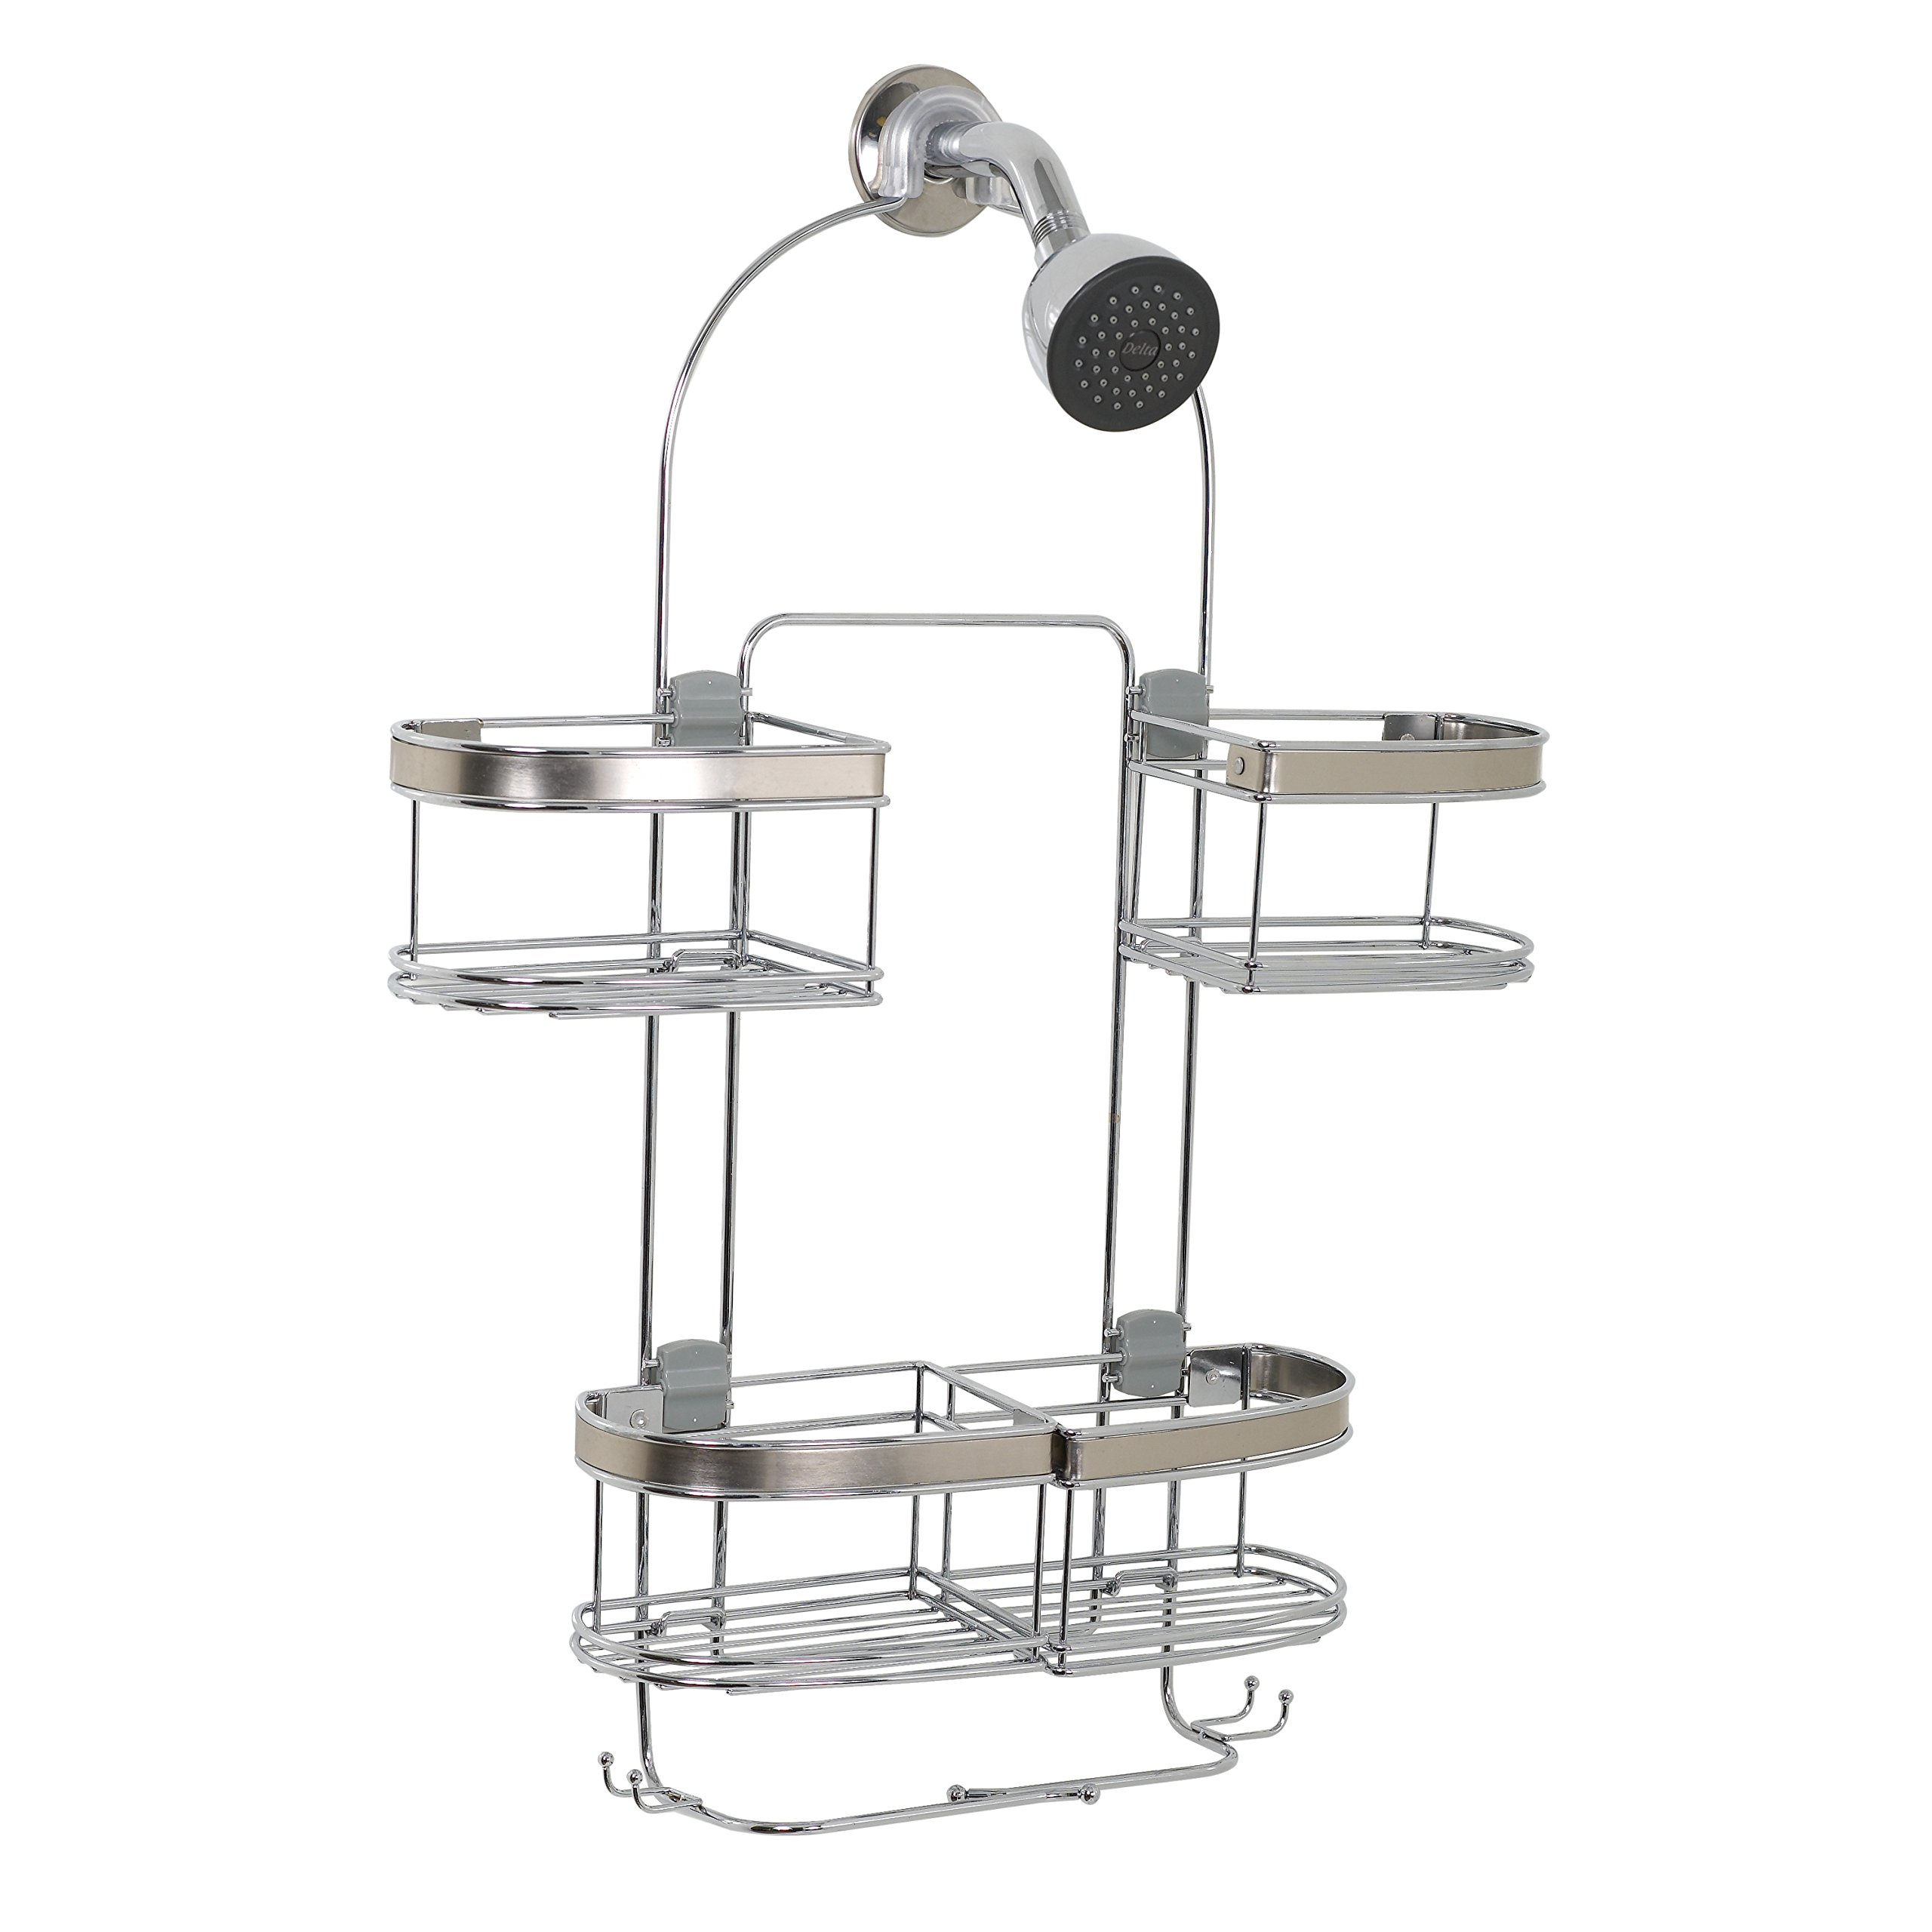 Zenna Home E7546STBB, Expandable Over-The-Showerhead Caddy, Stainless Steel by Zenna Home